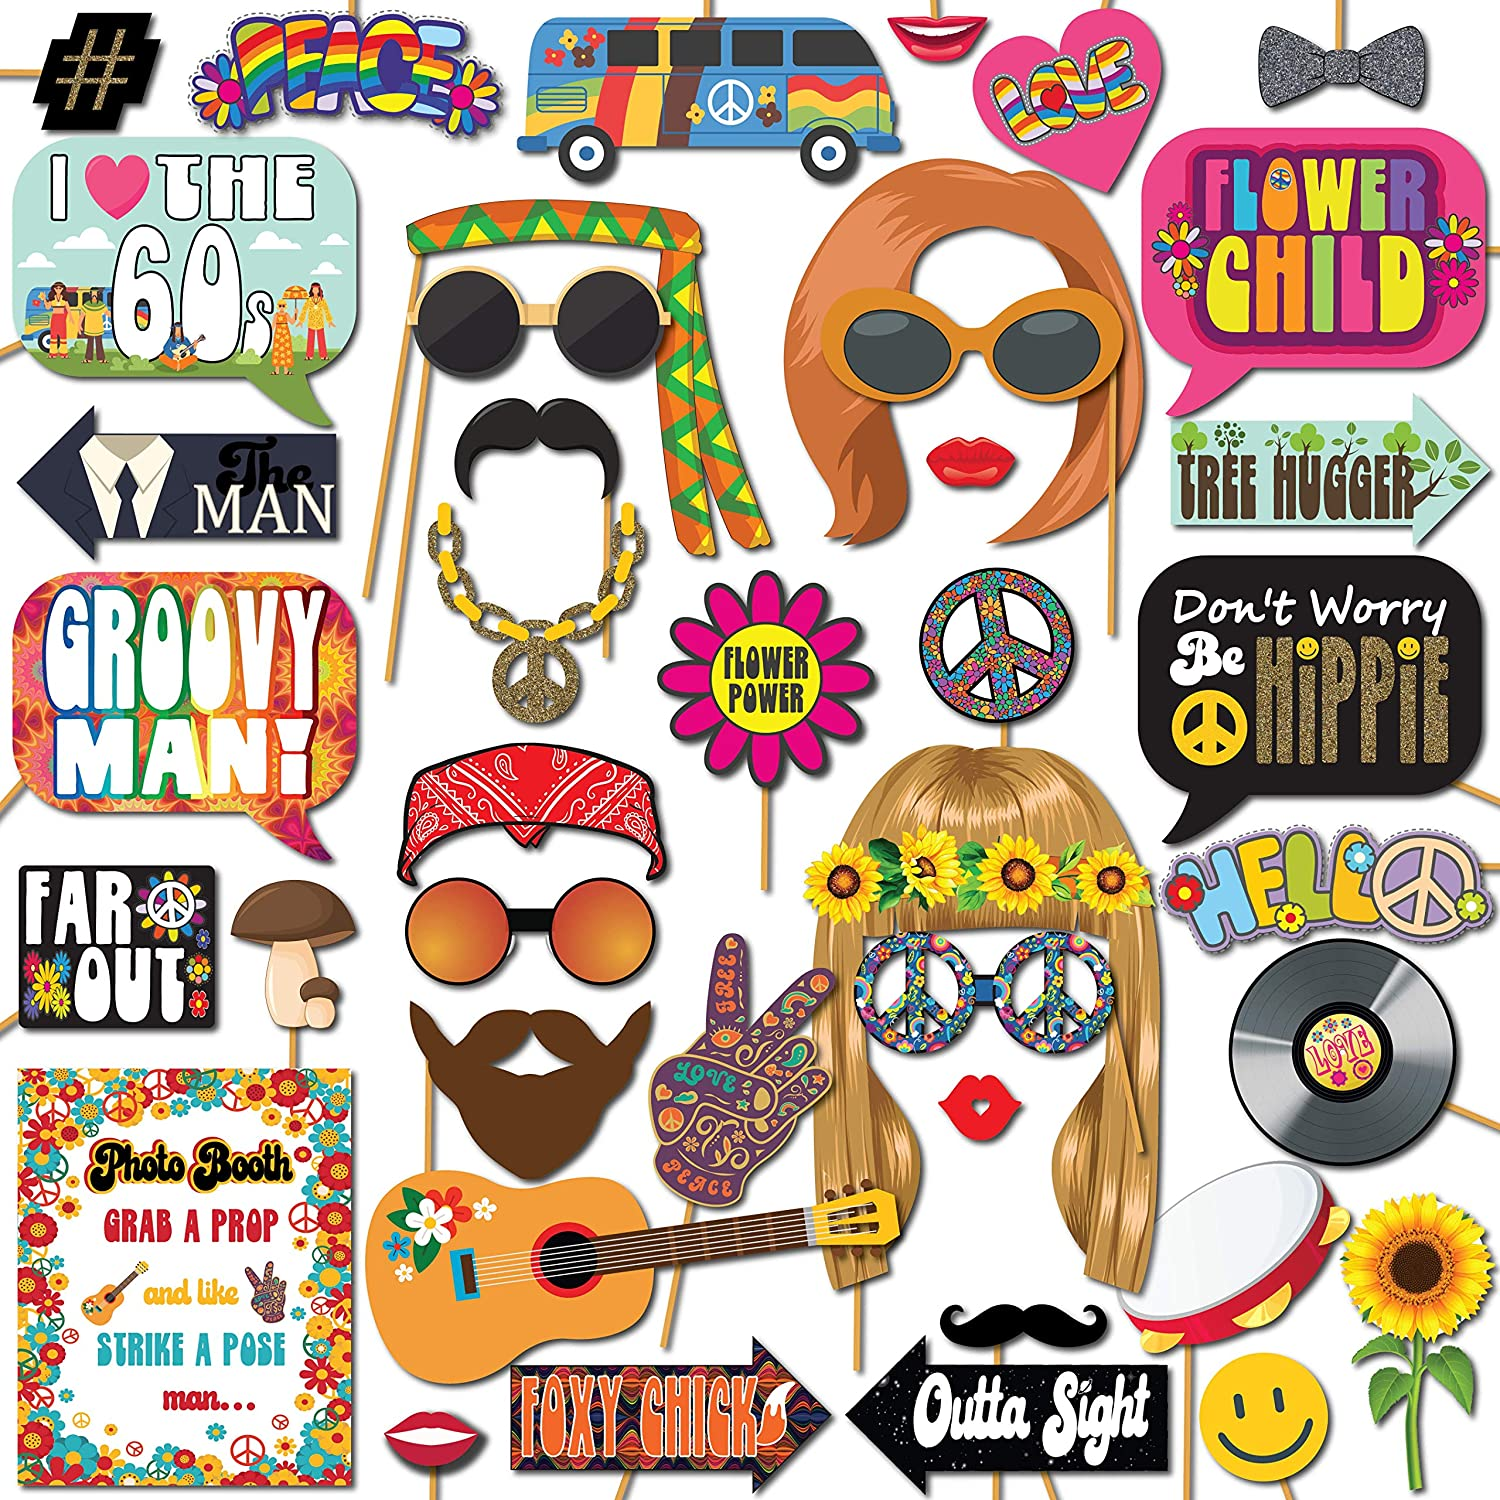 1960s Groovy Hippie Party Throwback Party Theme Photo Booth Props, 41 Pieces with Wooden Sticks and Strike a Pose Sign by Outside The Booth